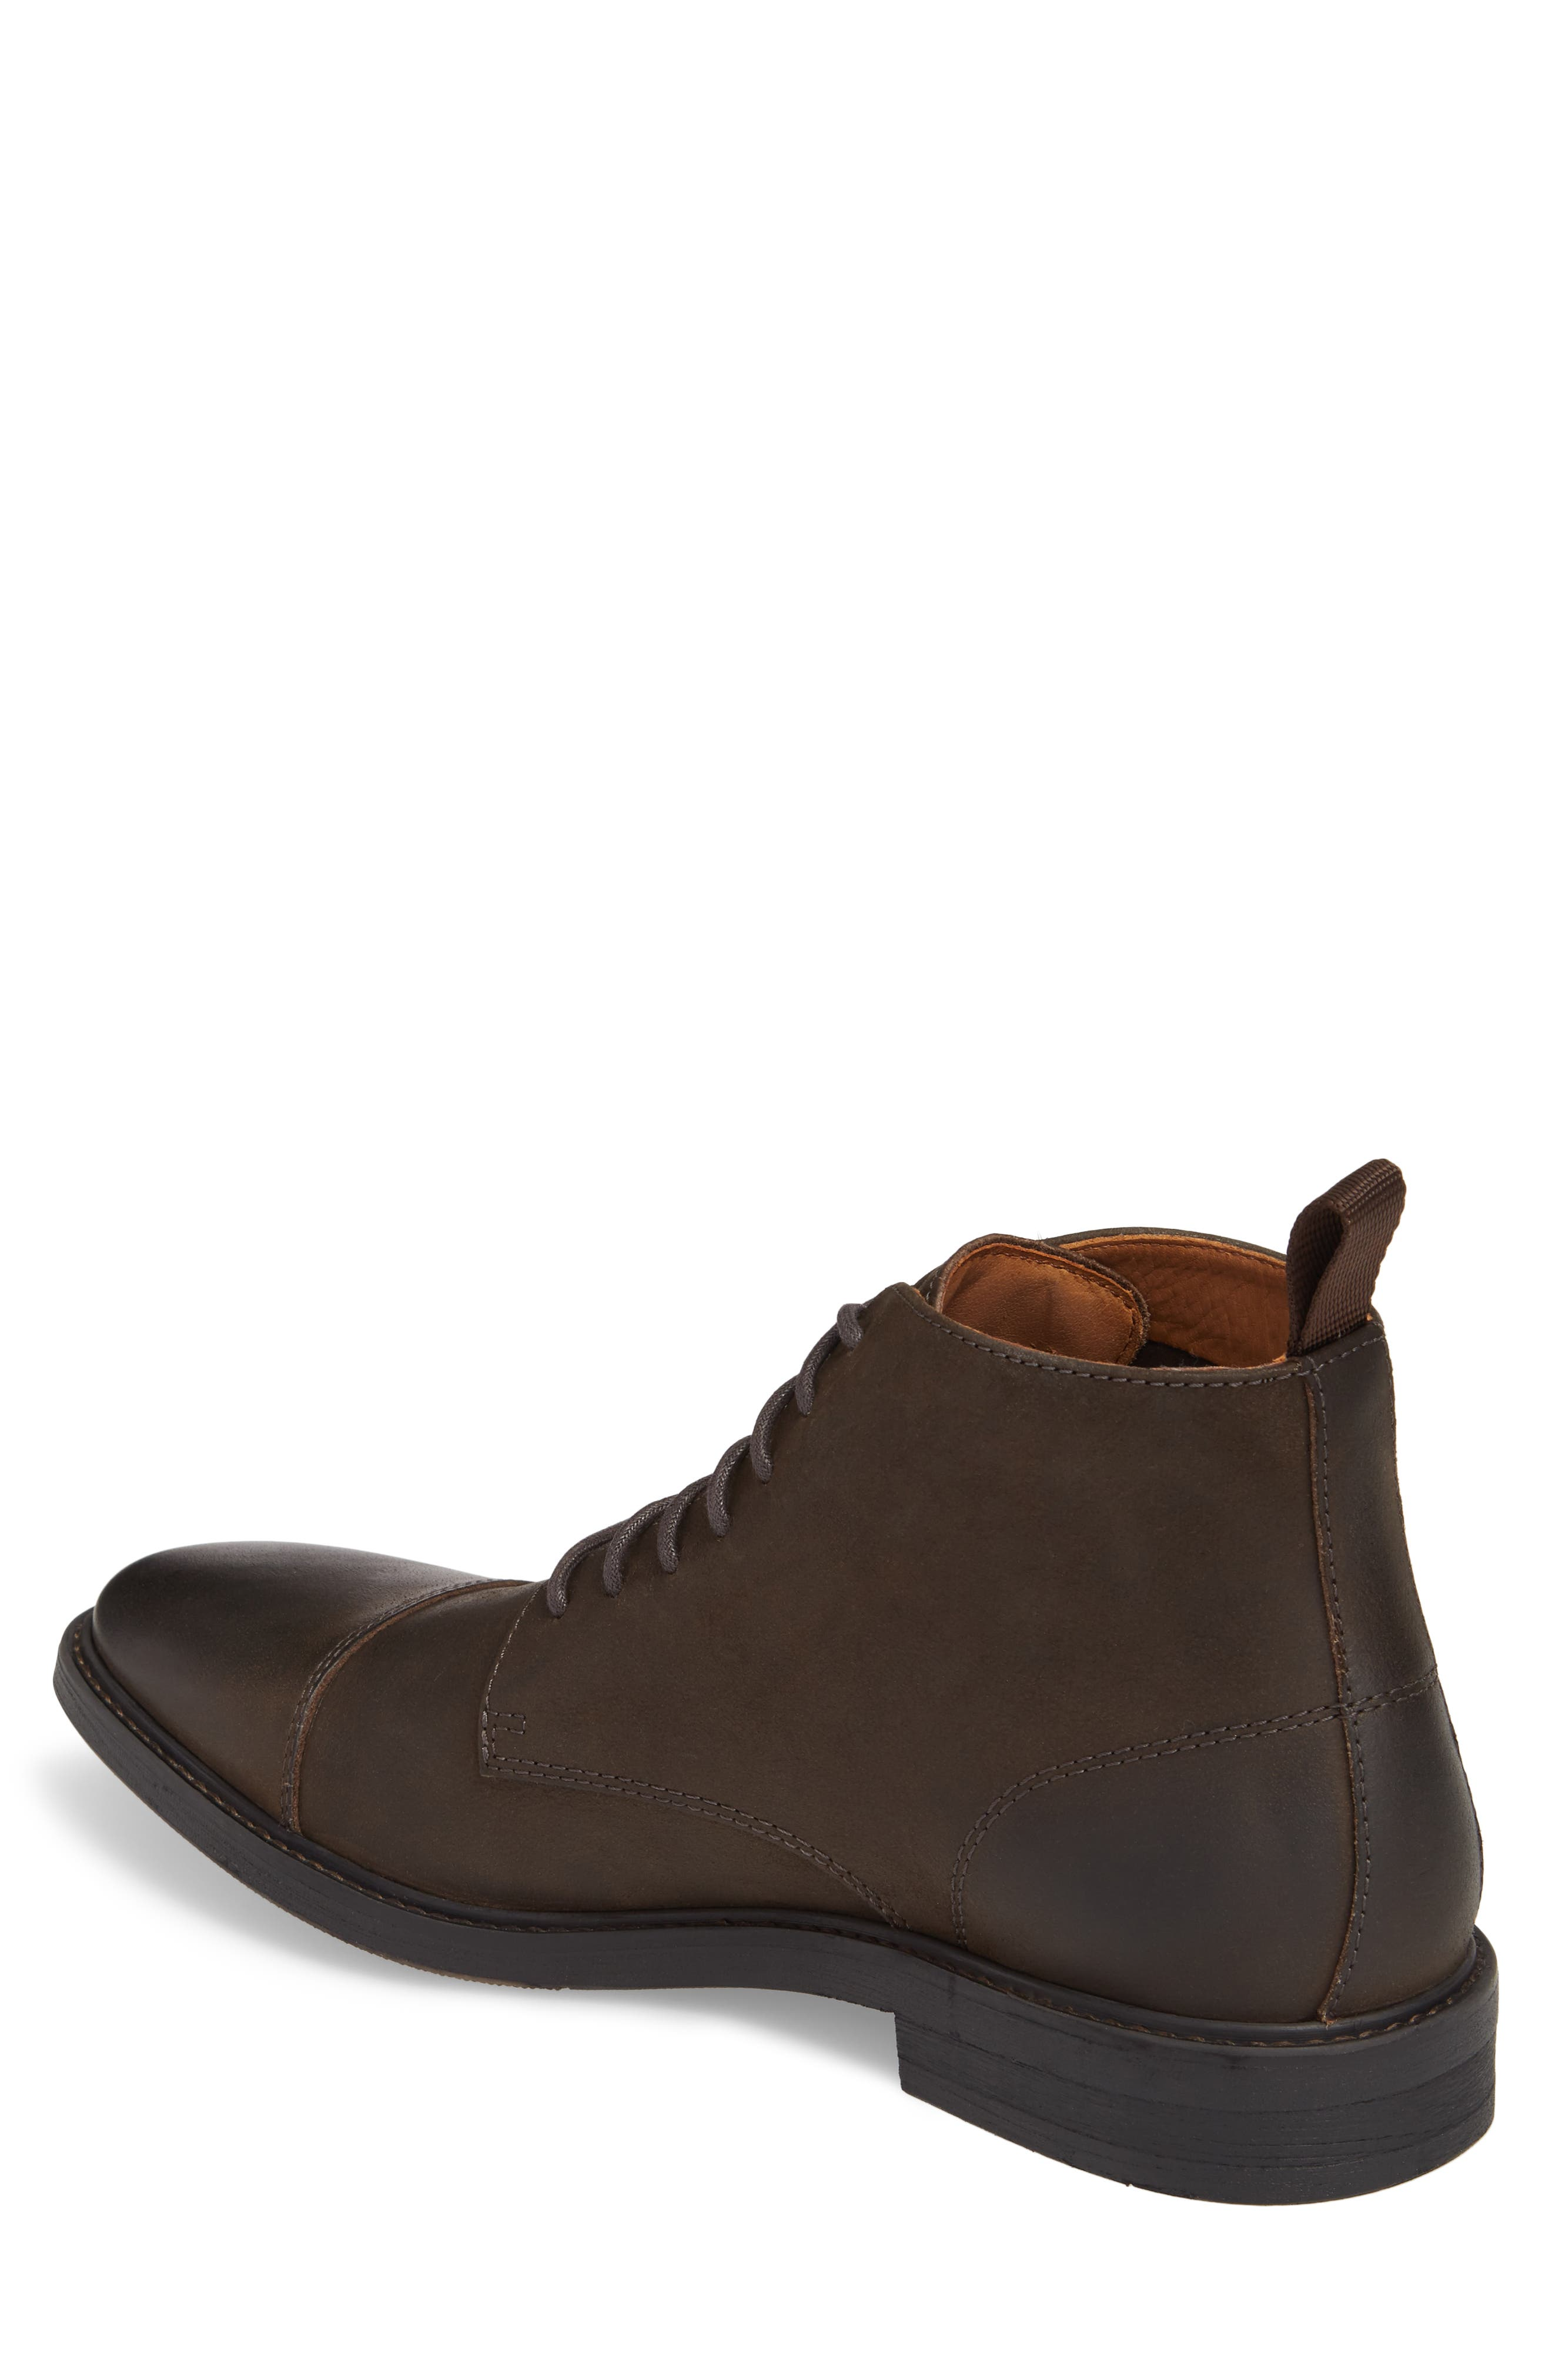 Pateros Cap Toe Boot,                             Alternate thumbnail 2, color,                             Chocolate Leather